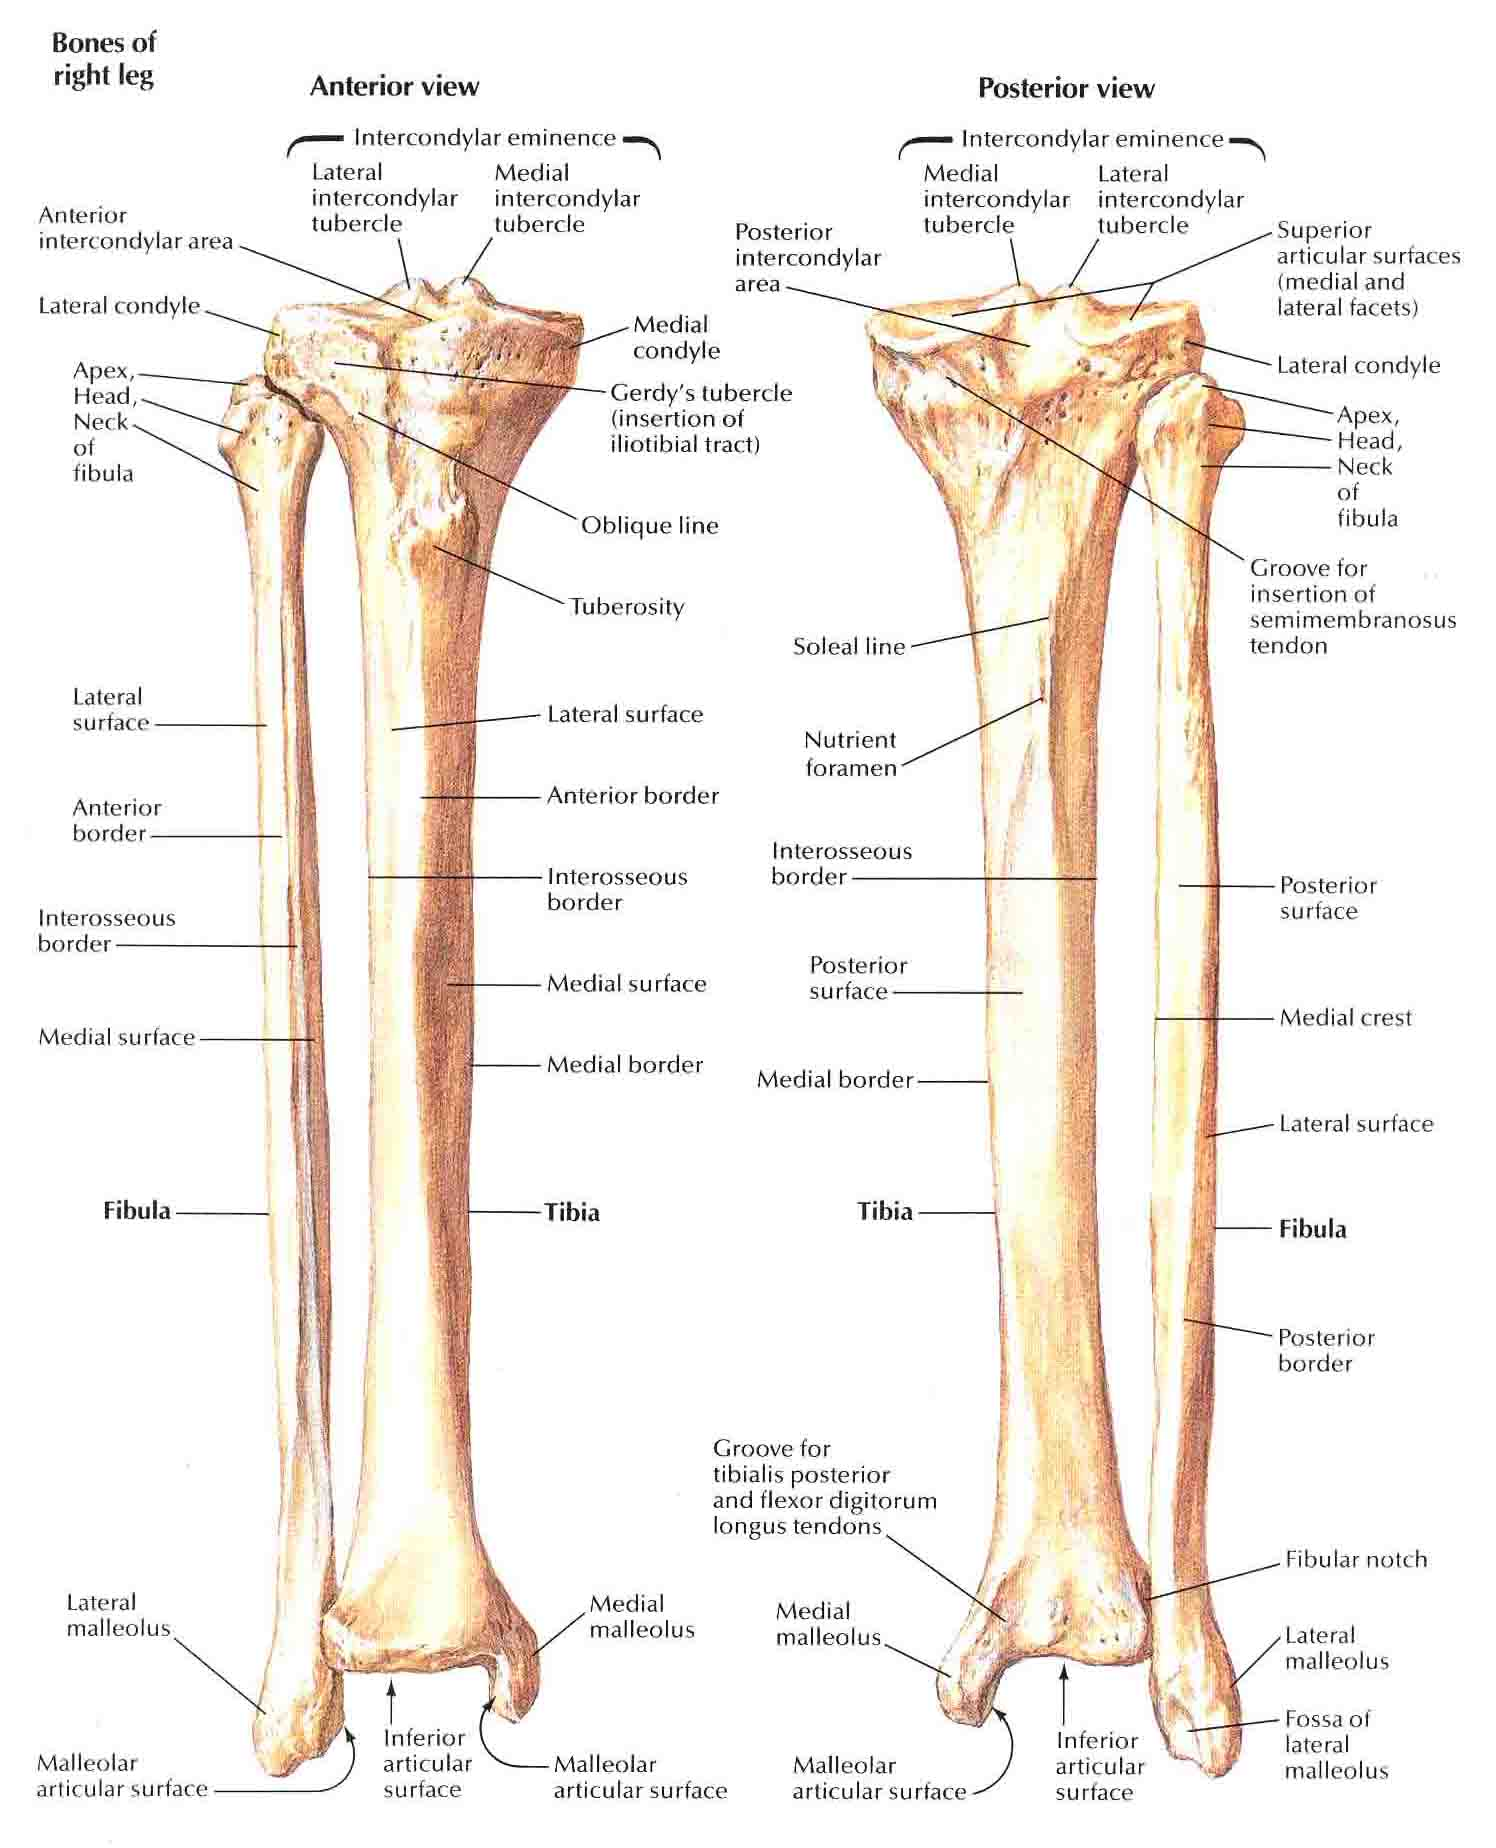 fibula the leg bone located on the lateral side of the tibia